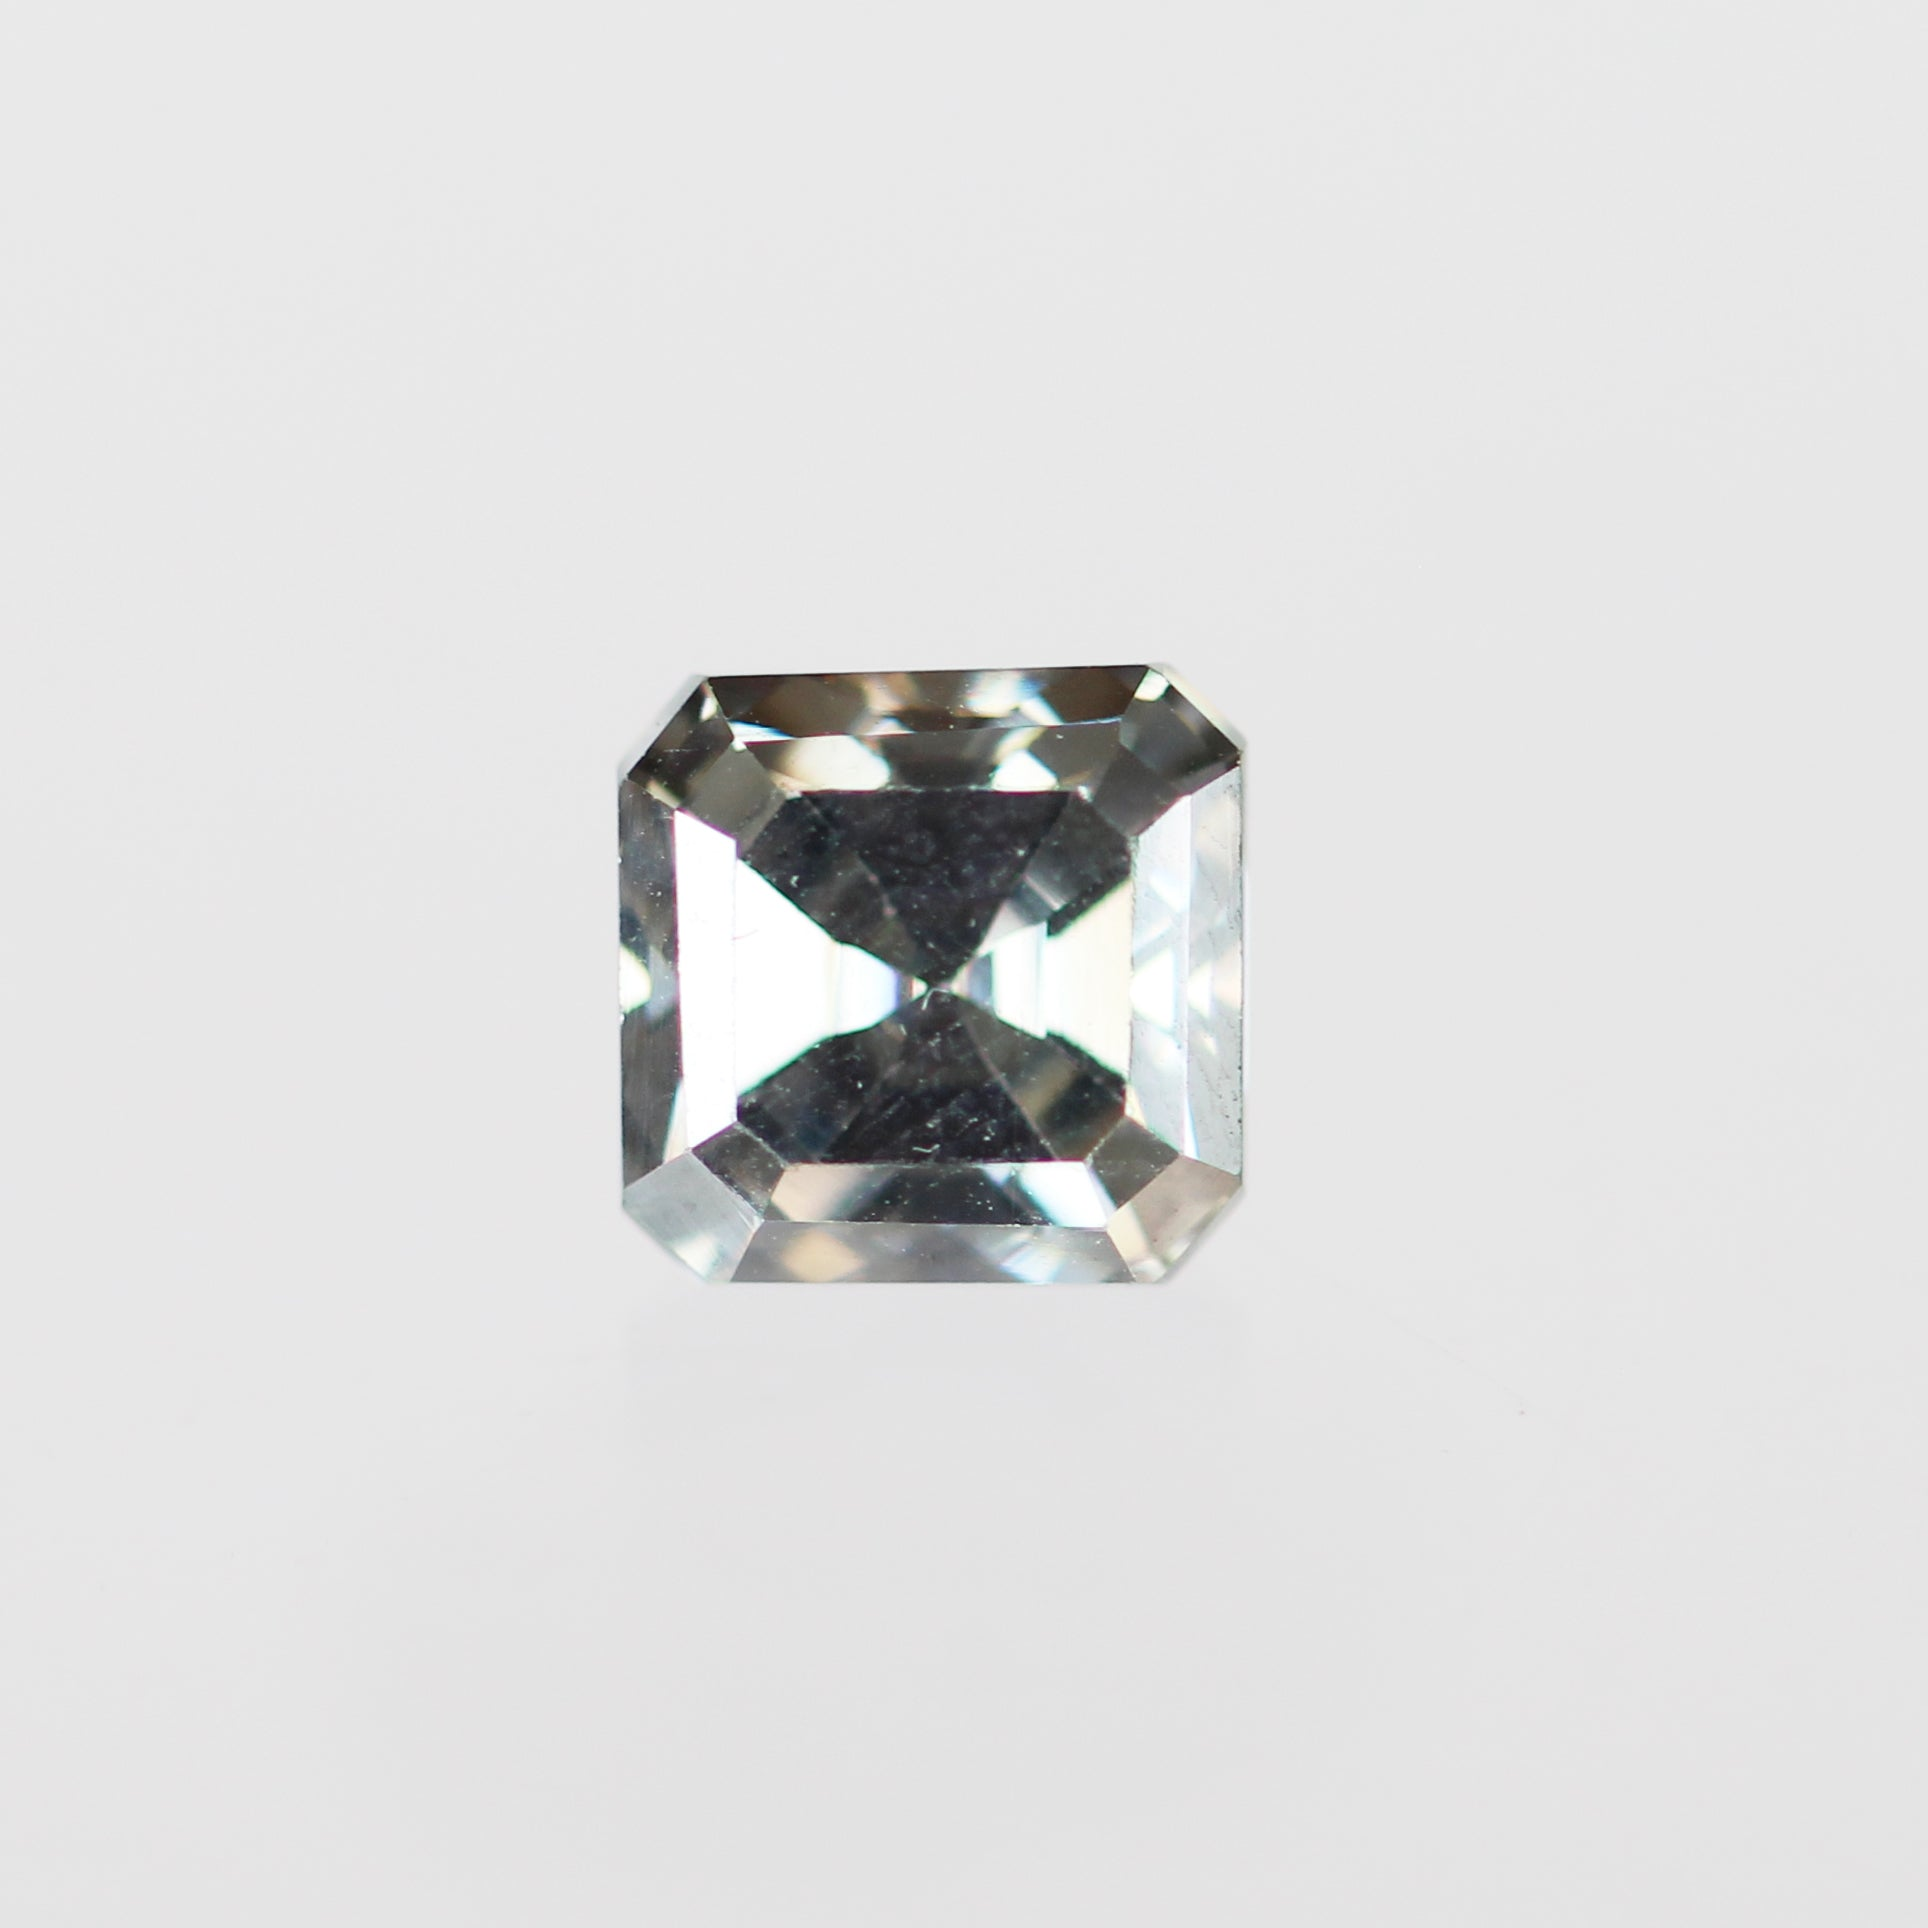 1.64 Carat Asscher Moissanite for Custom Work - Inventory Code ABMOI164 - Celestial Diamonds ® by Midwinter Co.